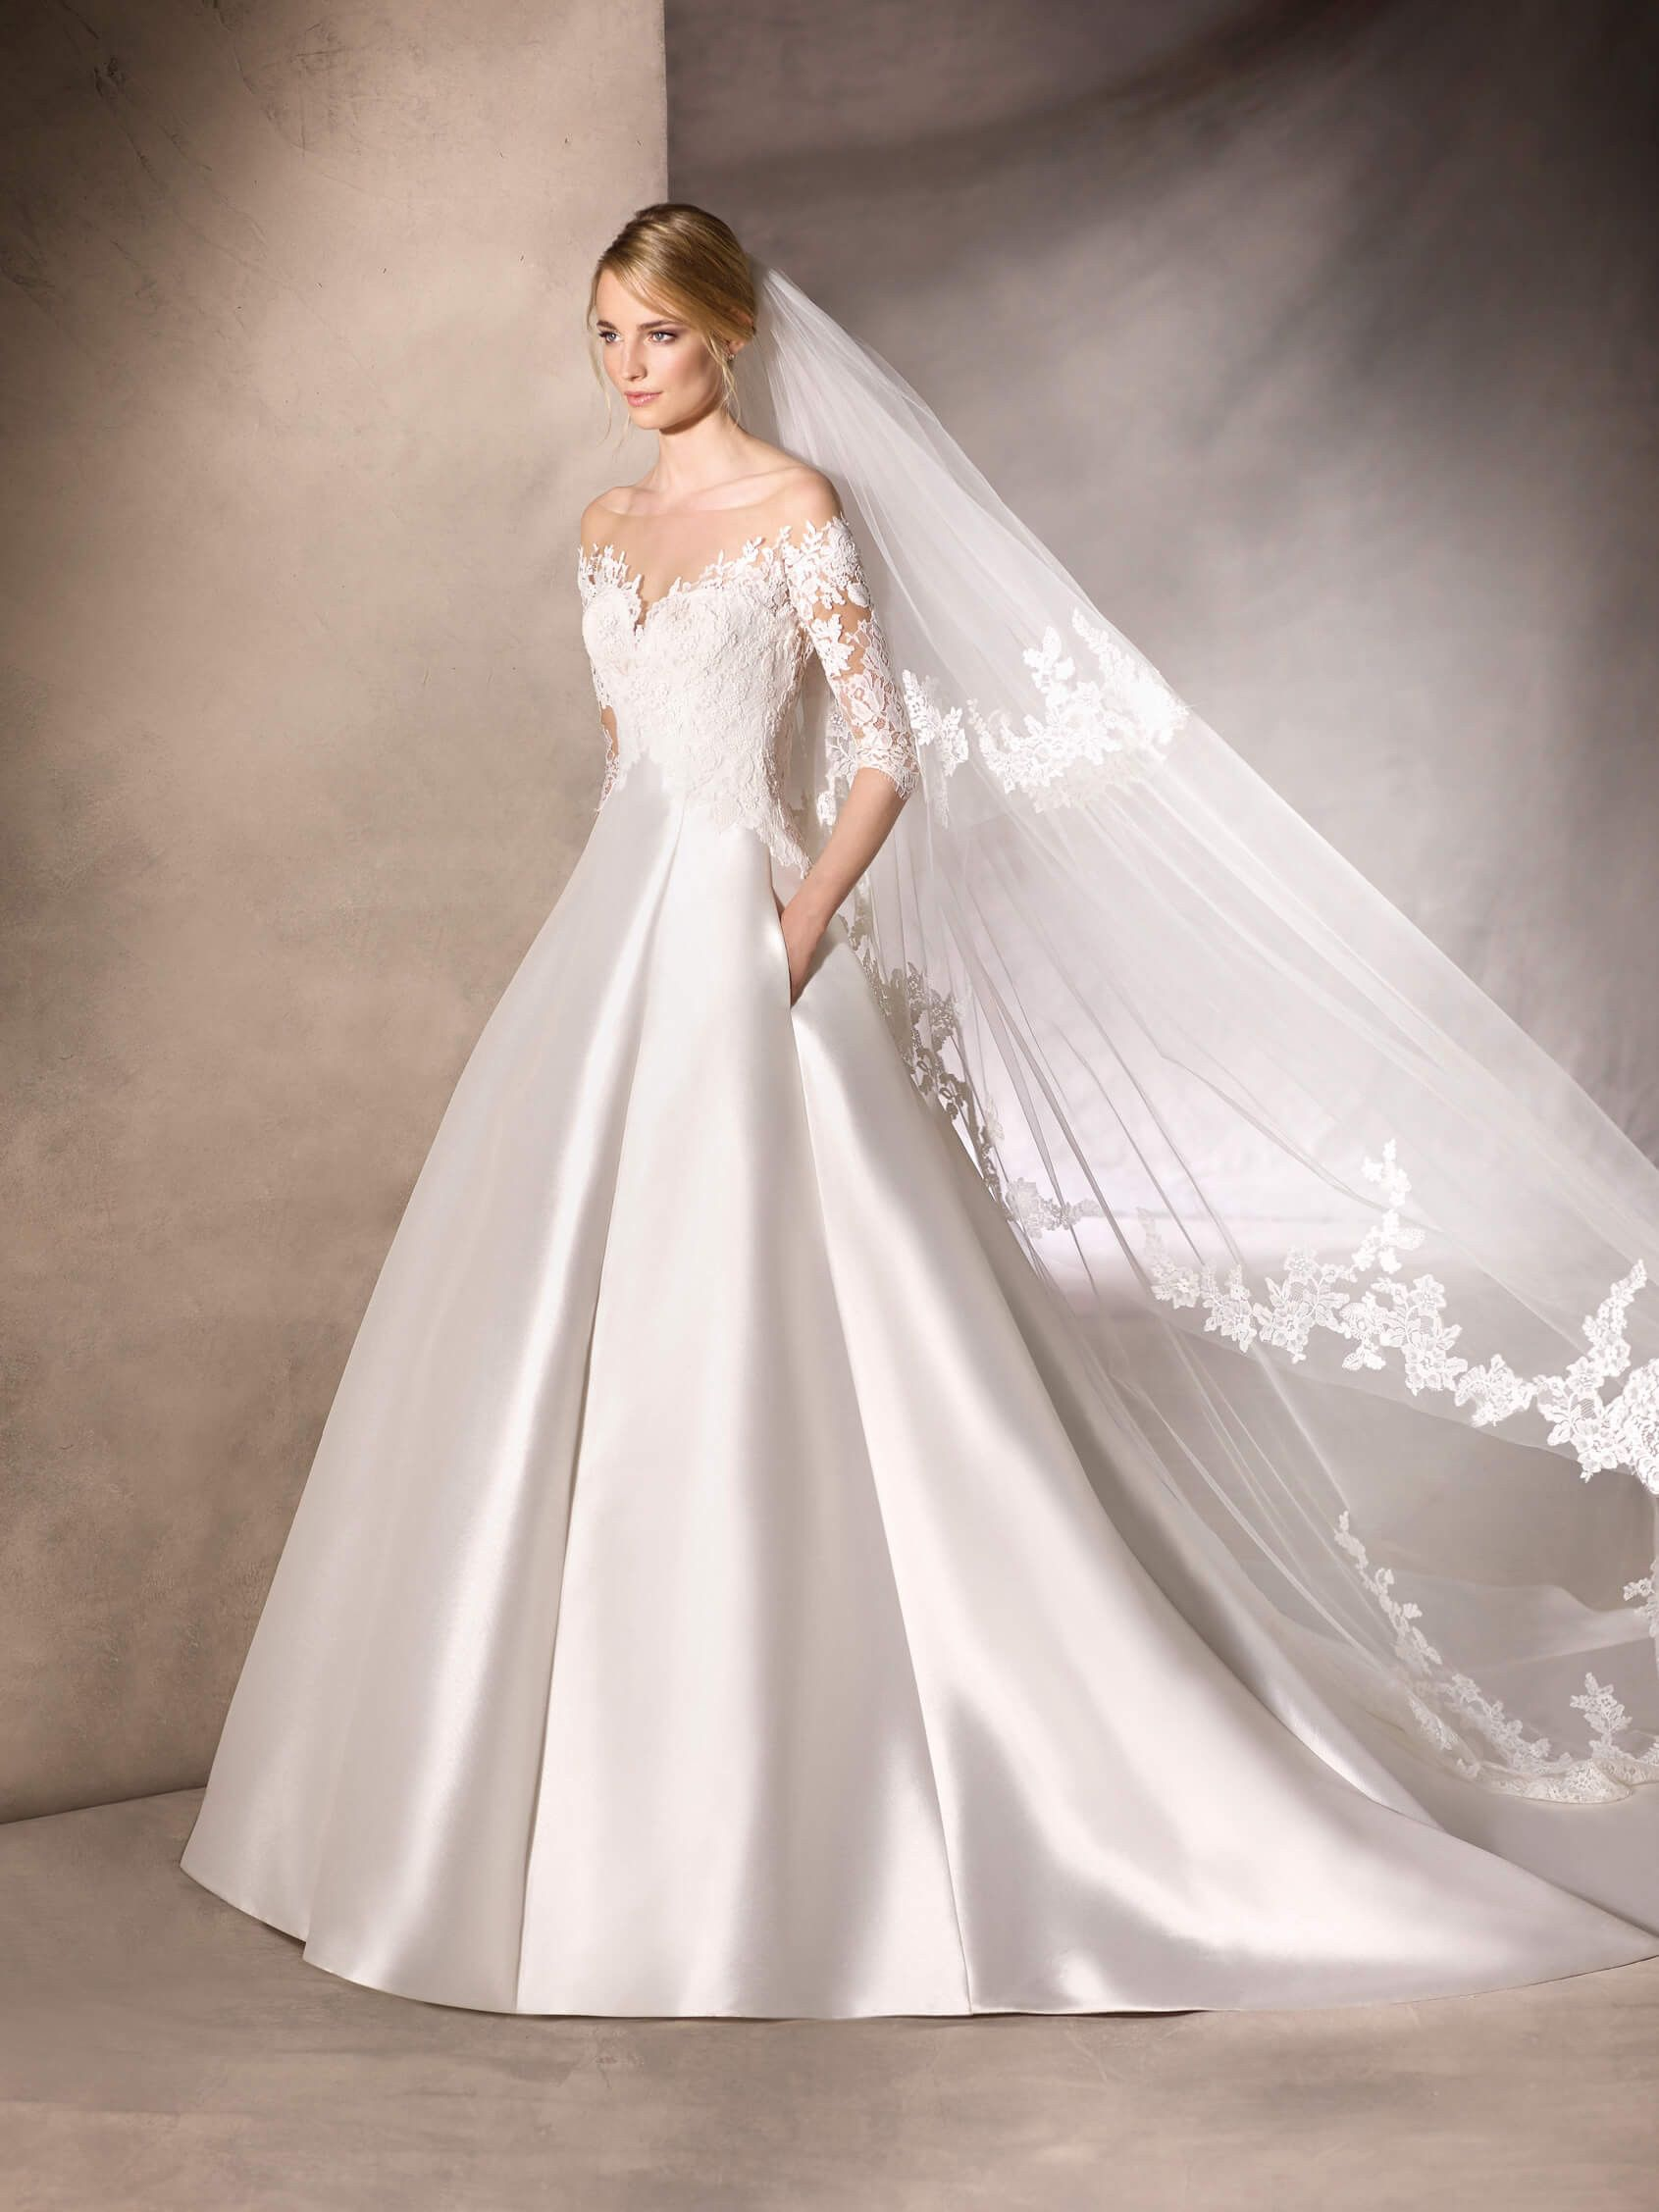 7426e26d8526 HALAND is a princess wedding dress with a sweetheart neckline in mikado